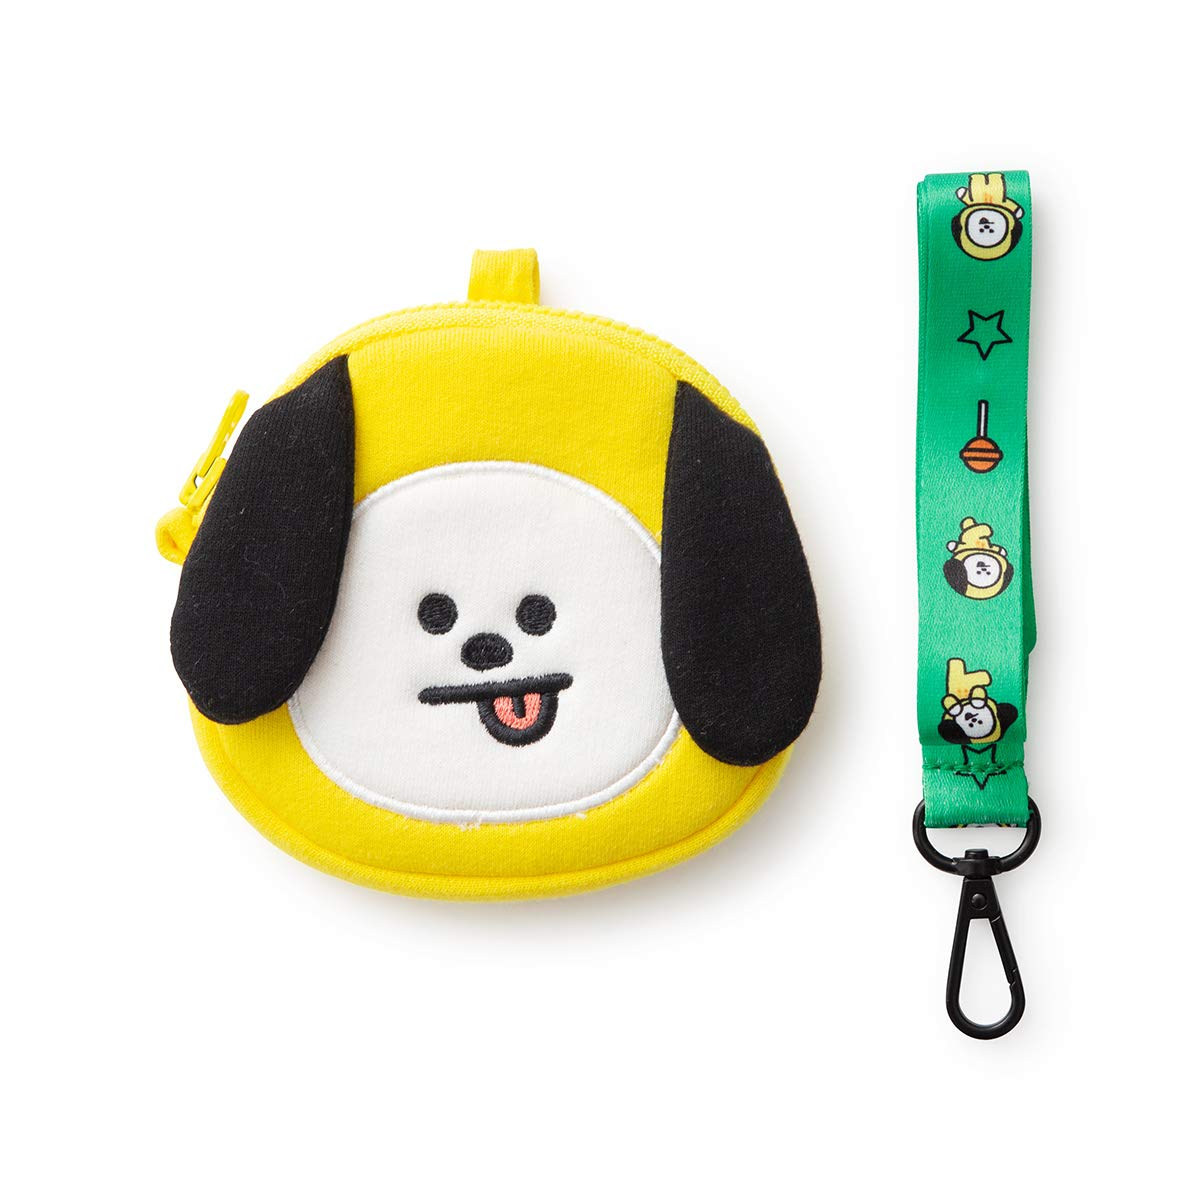 Character Neck Strap Coin Purse BT21 Official Merchandise by Line Friends